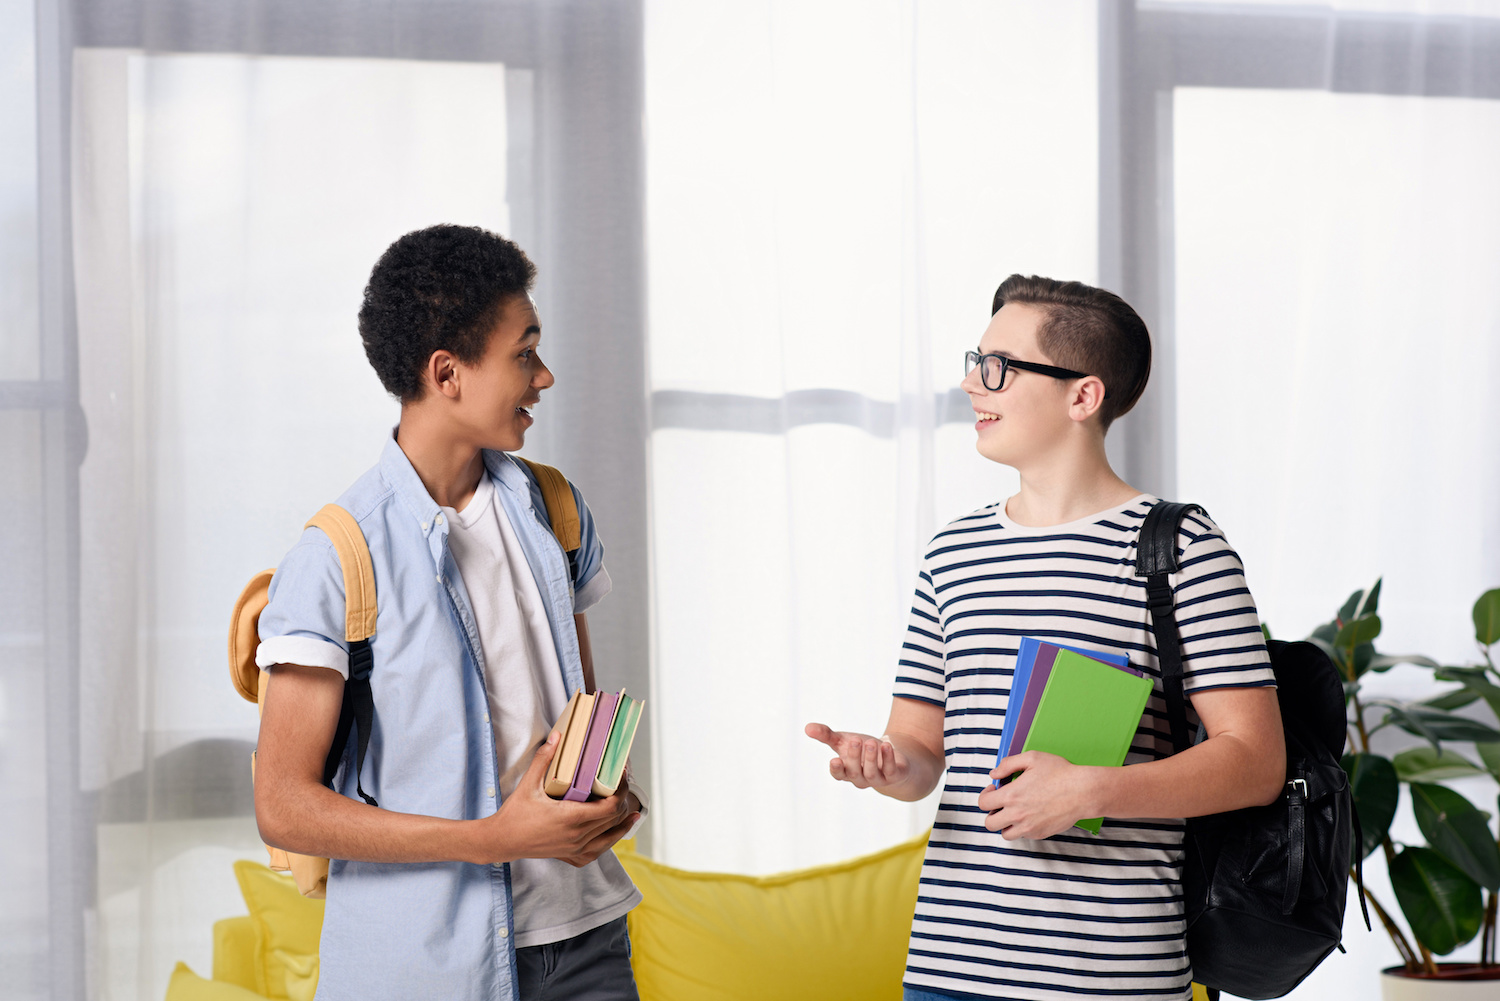 multicultural teen boys holding books and talking at home